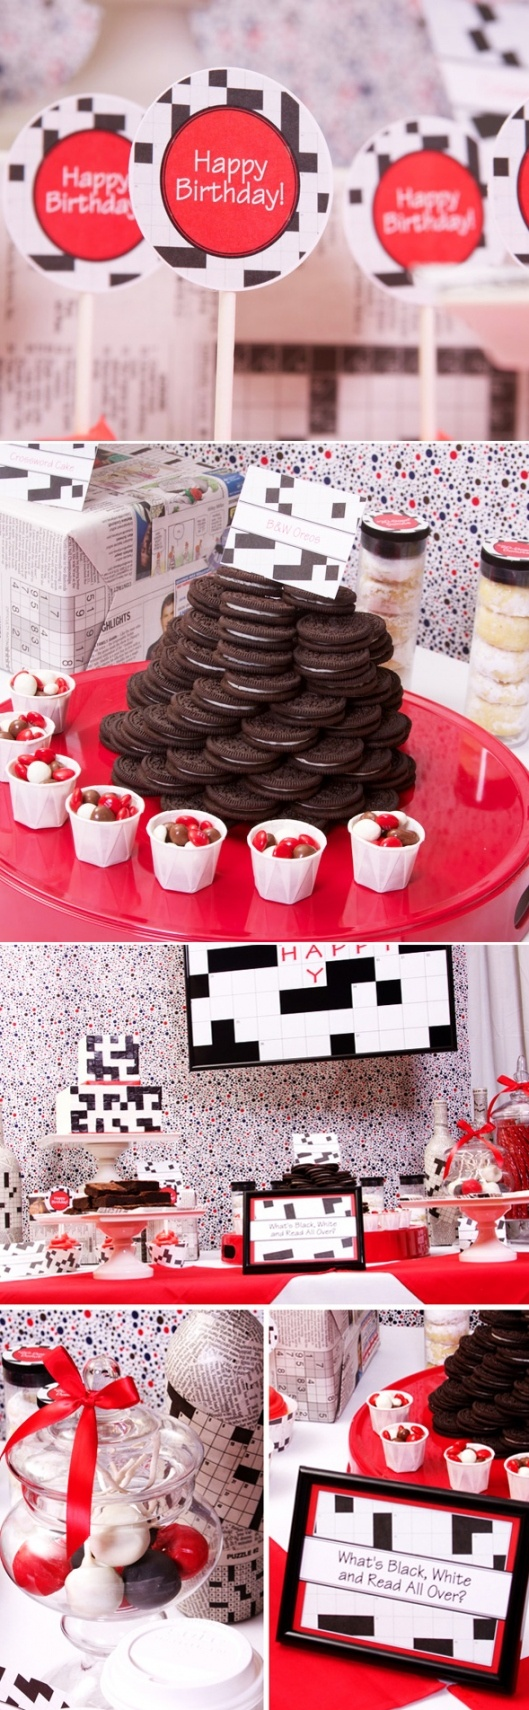 Game with shapes of different colors crossword - Crossword Birthday Party